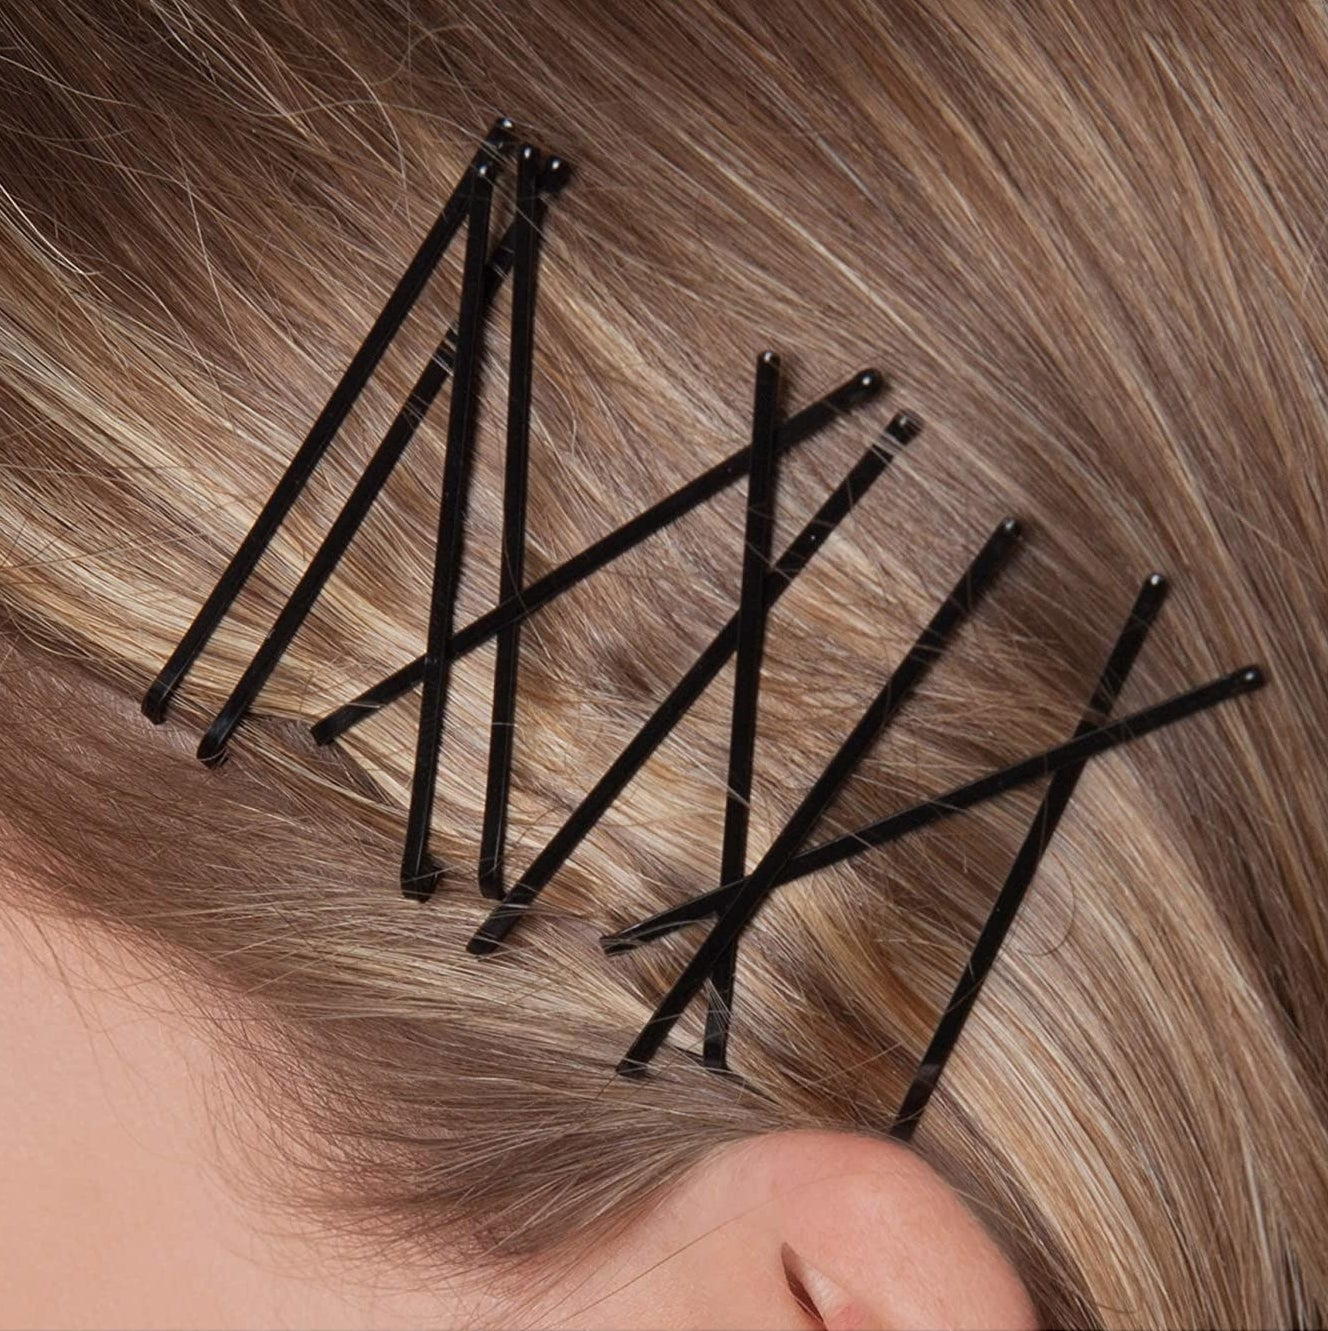 A person with several bobby pins in their hair